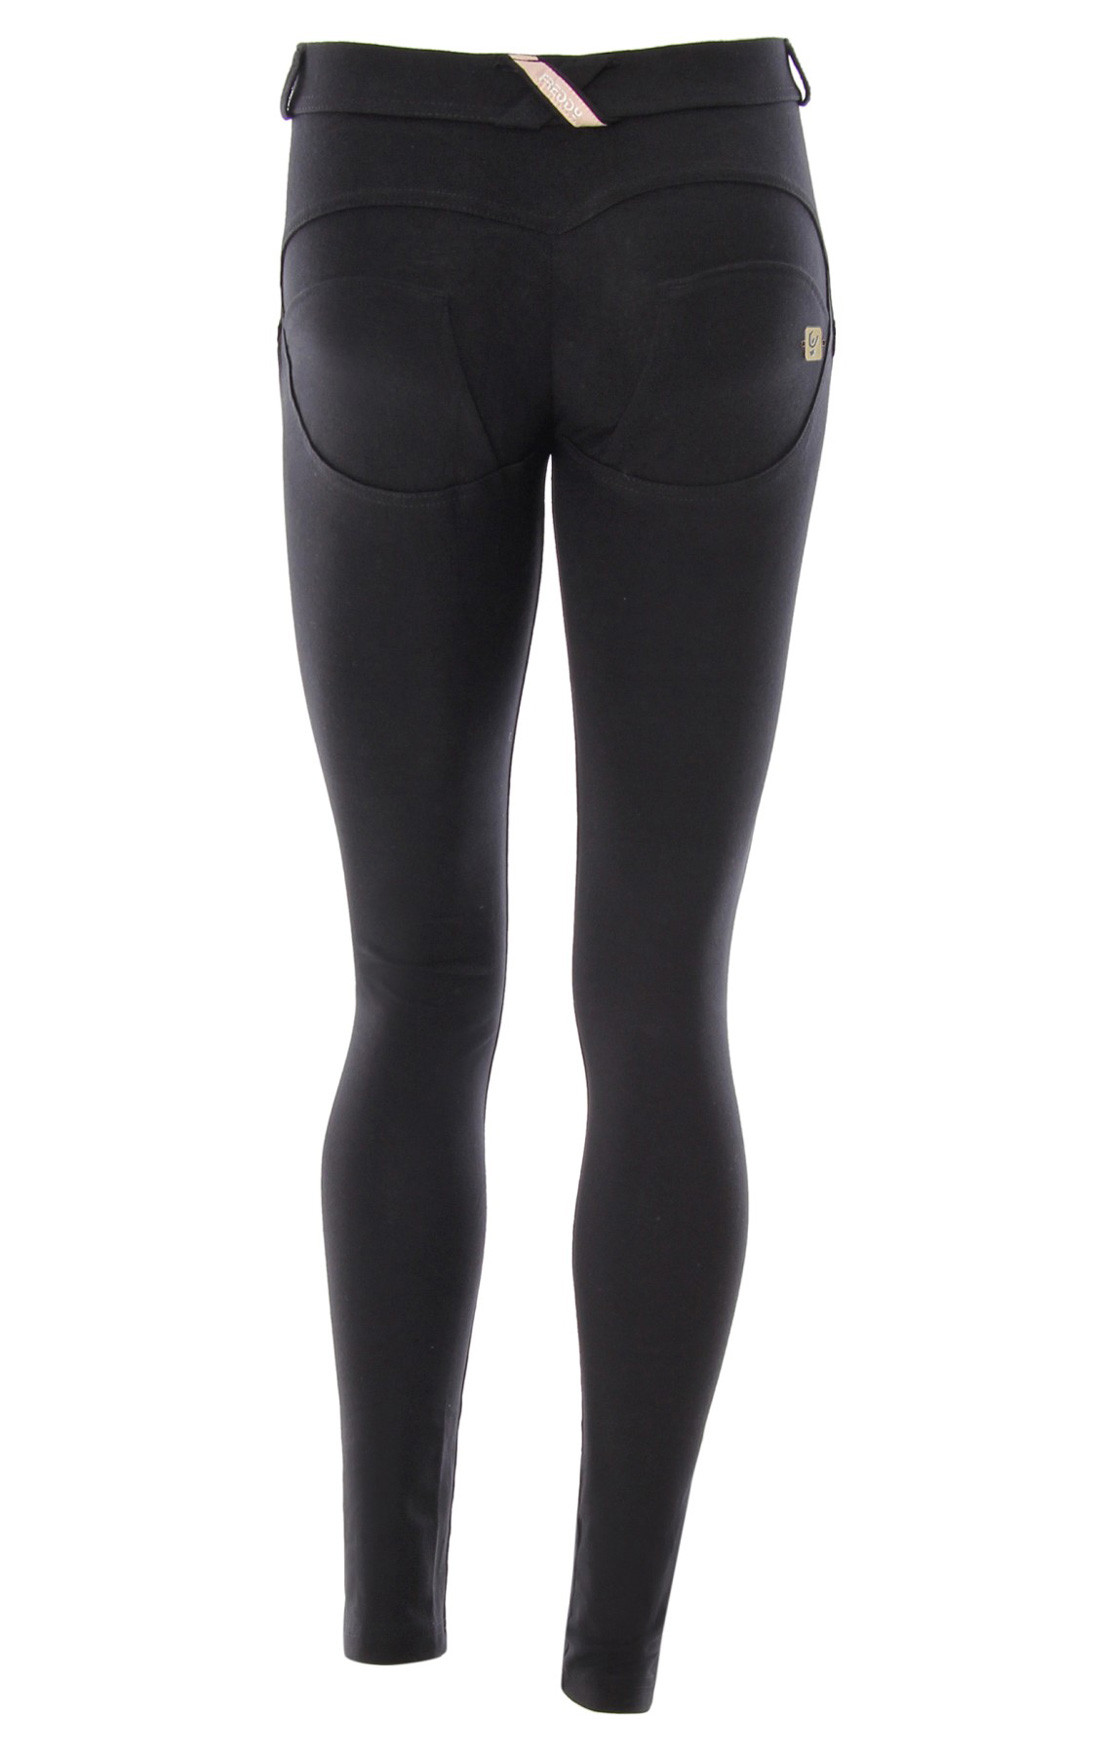 babe1bf8089ba Freddy - Wr.Up® Shaping Effect Mid Waist Skinny Jeggings Black  (WRUP1RC01E_N) ...